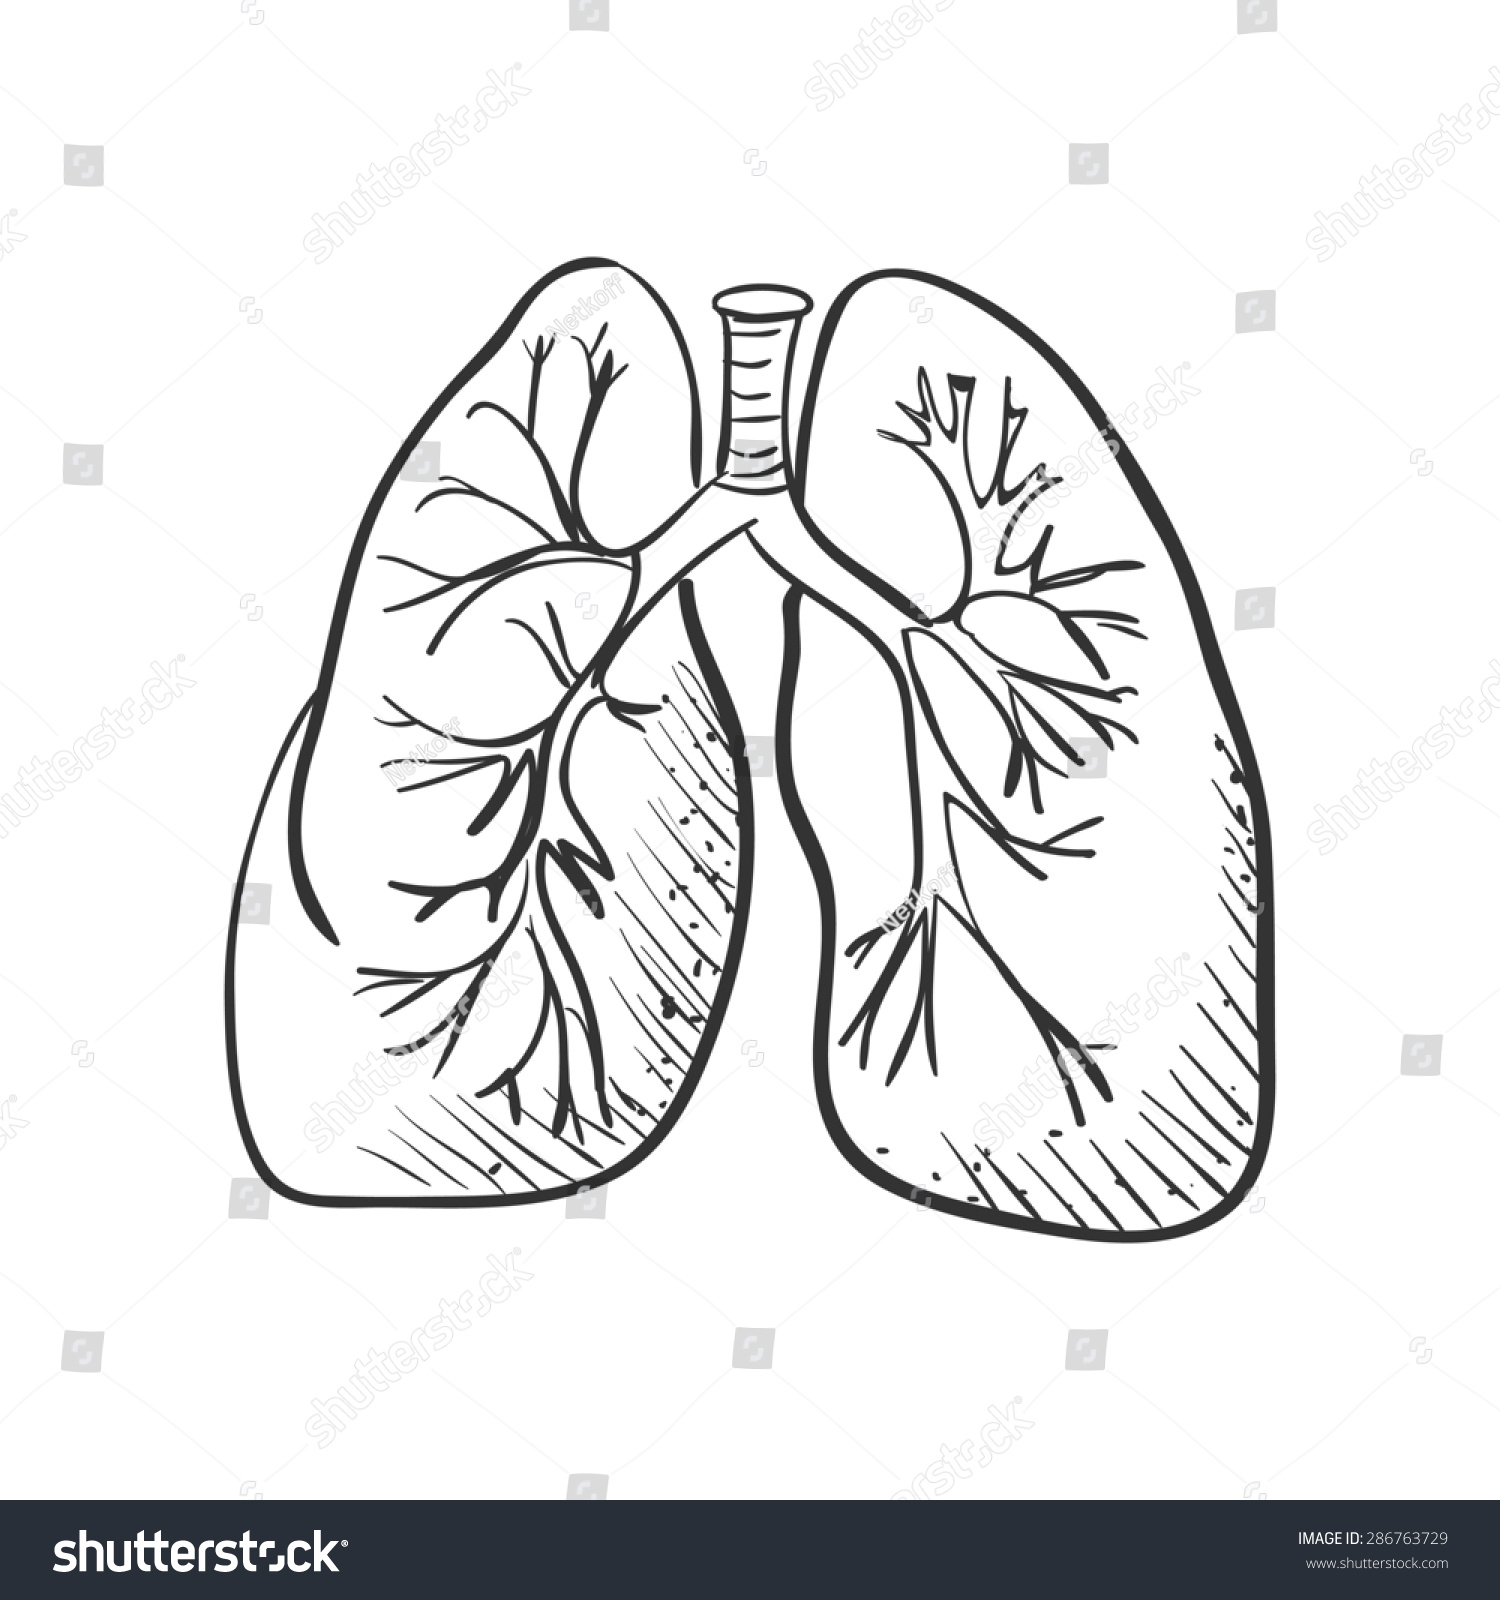 Lungs Sketch Stock Vector - Image: 39982679